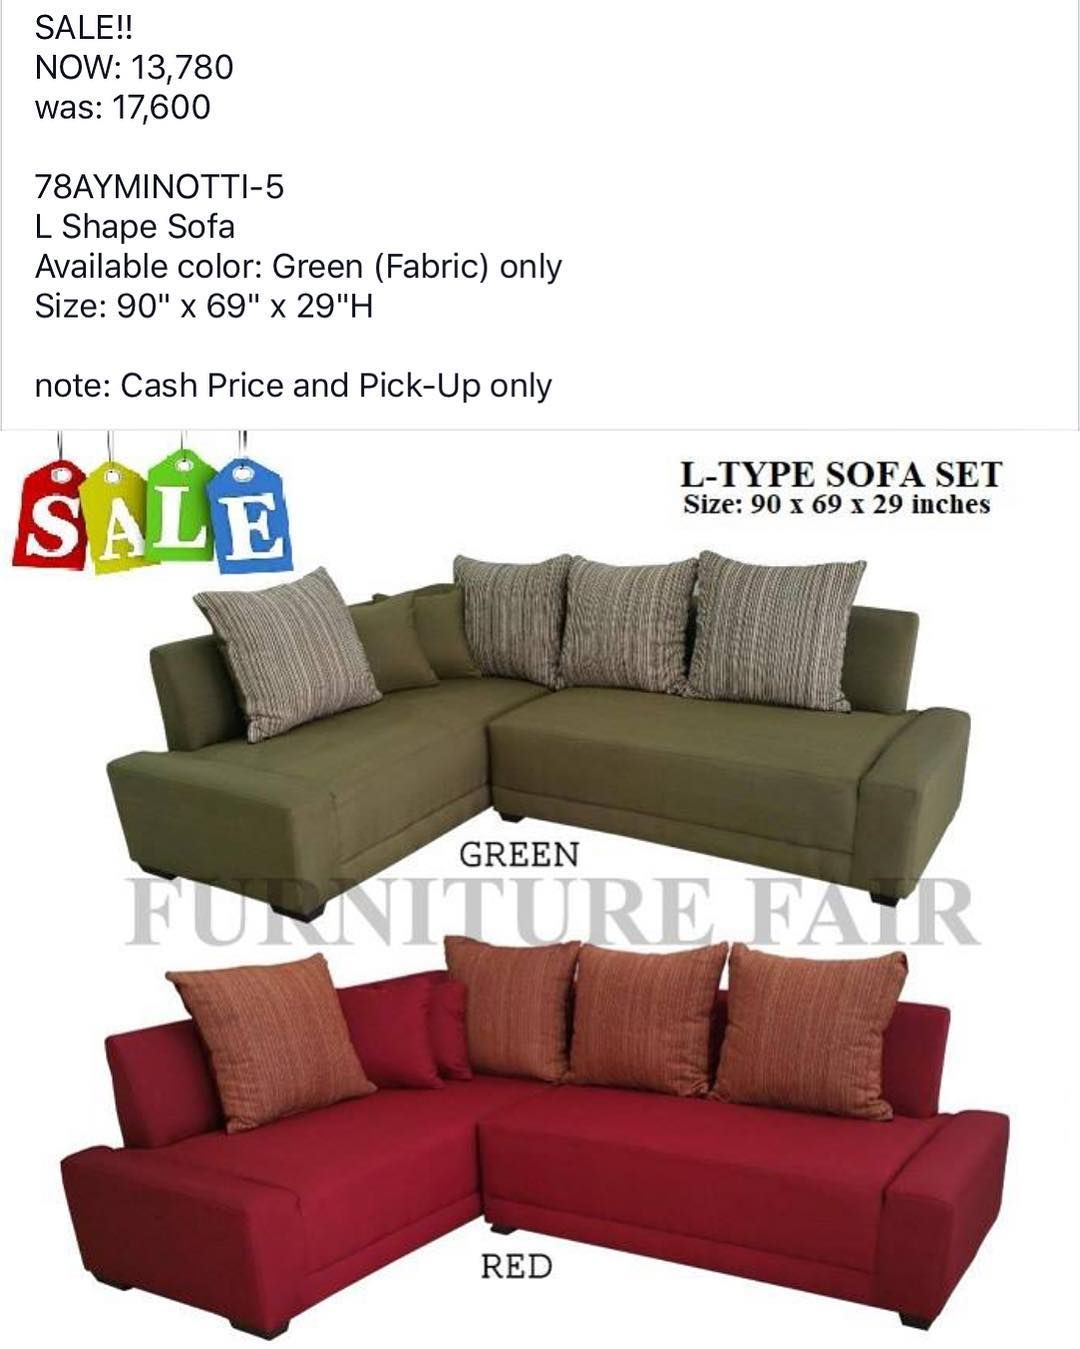 L Shape Sofa Set Furniture Sofaset Manila Home Furniturefair Livingroom Salaset Sale L Shape Sofa Set L Shaped Sofa L Type Sofa